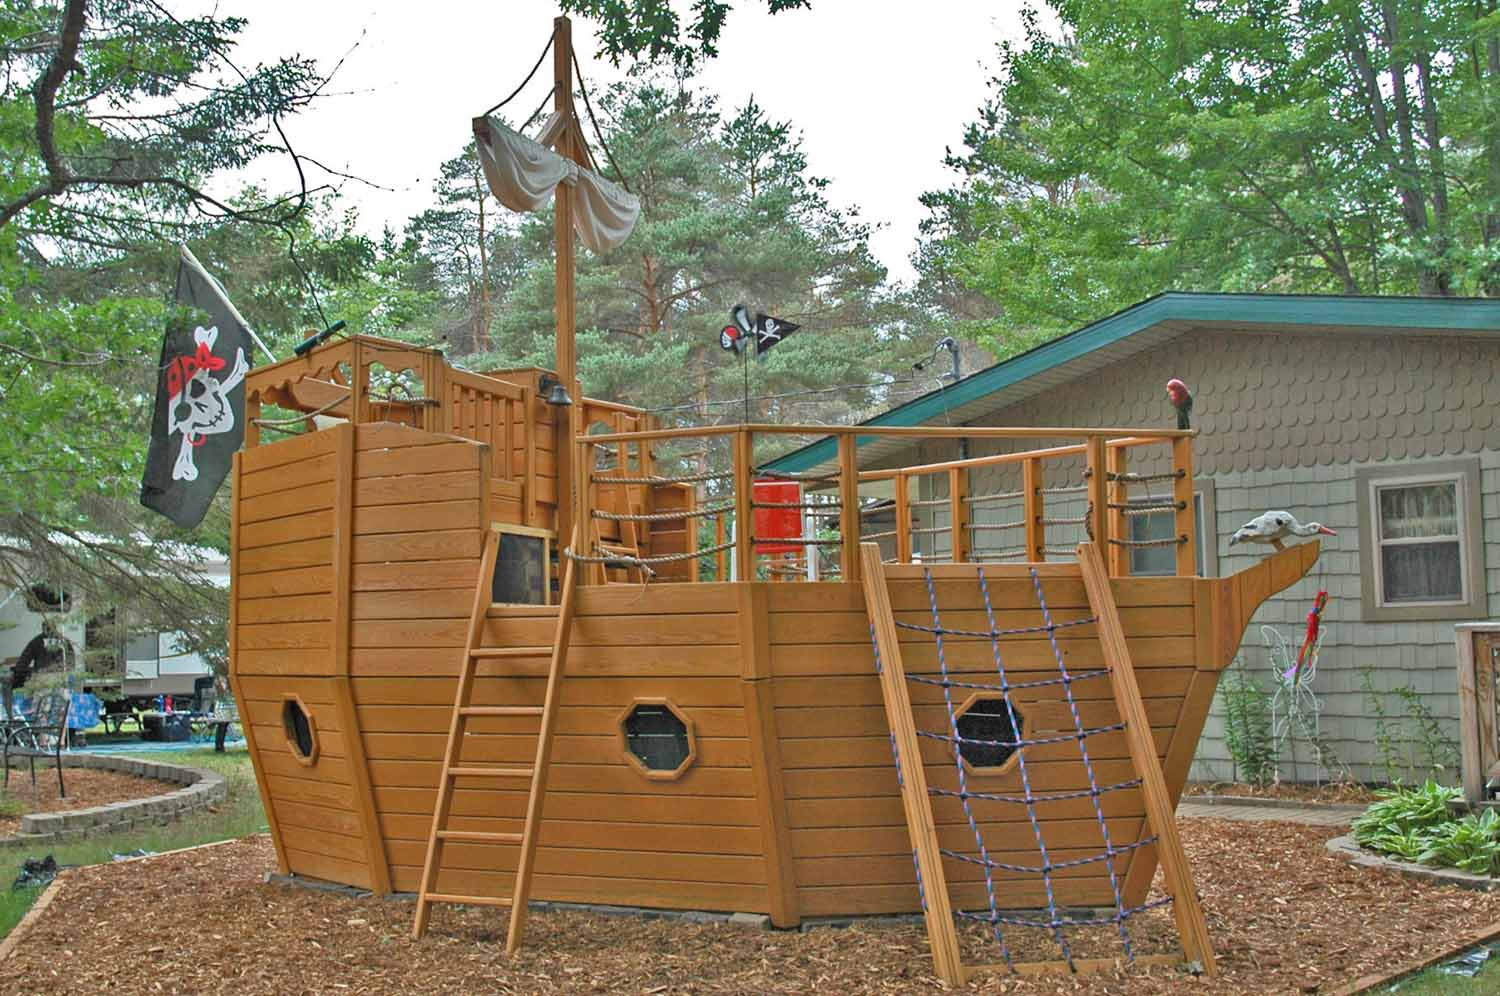 The Pirate Ship...the project from last year's gathering.  Still looking good!